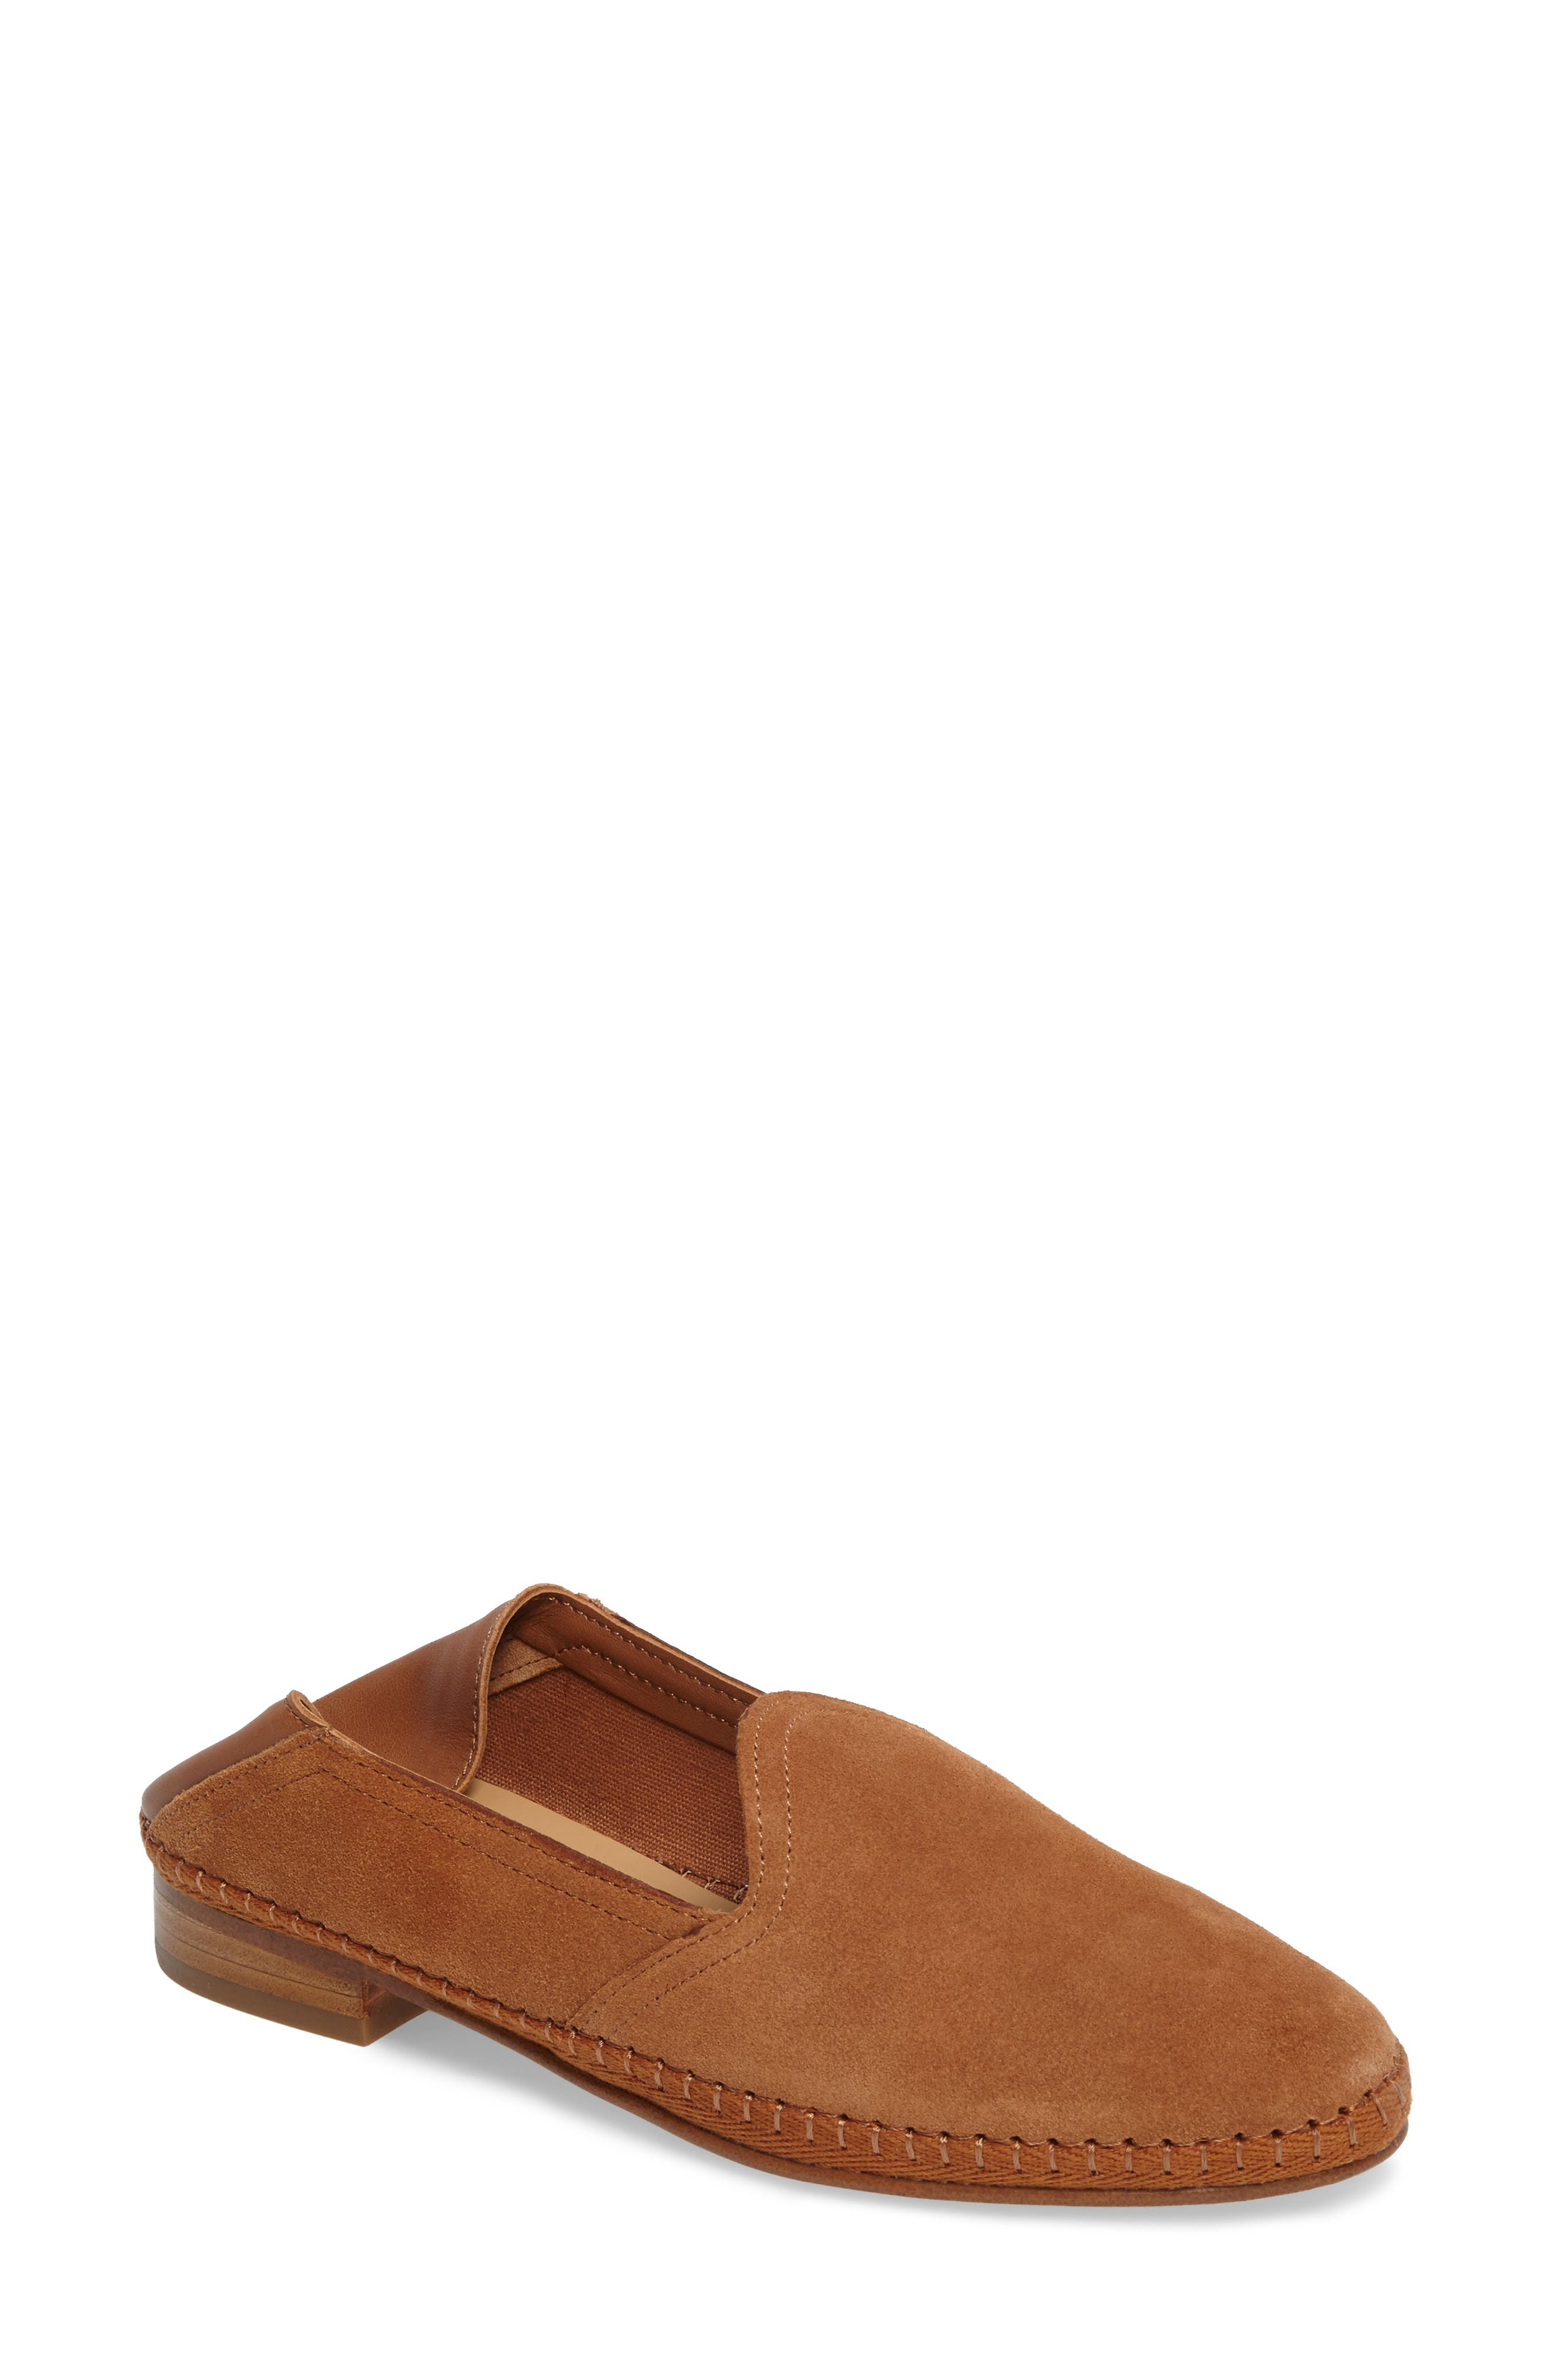 Soludus Convertible Venetian Loafer (Women)